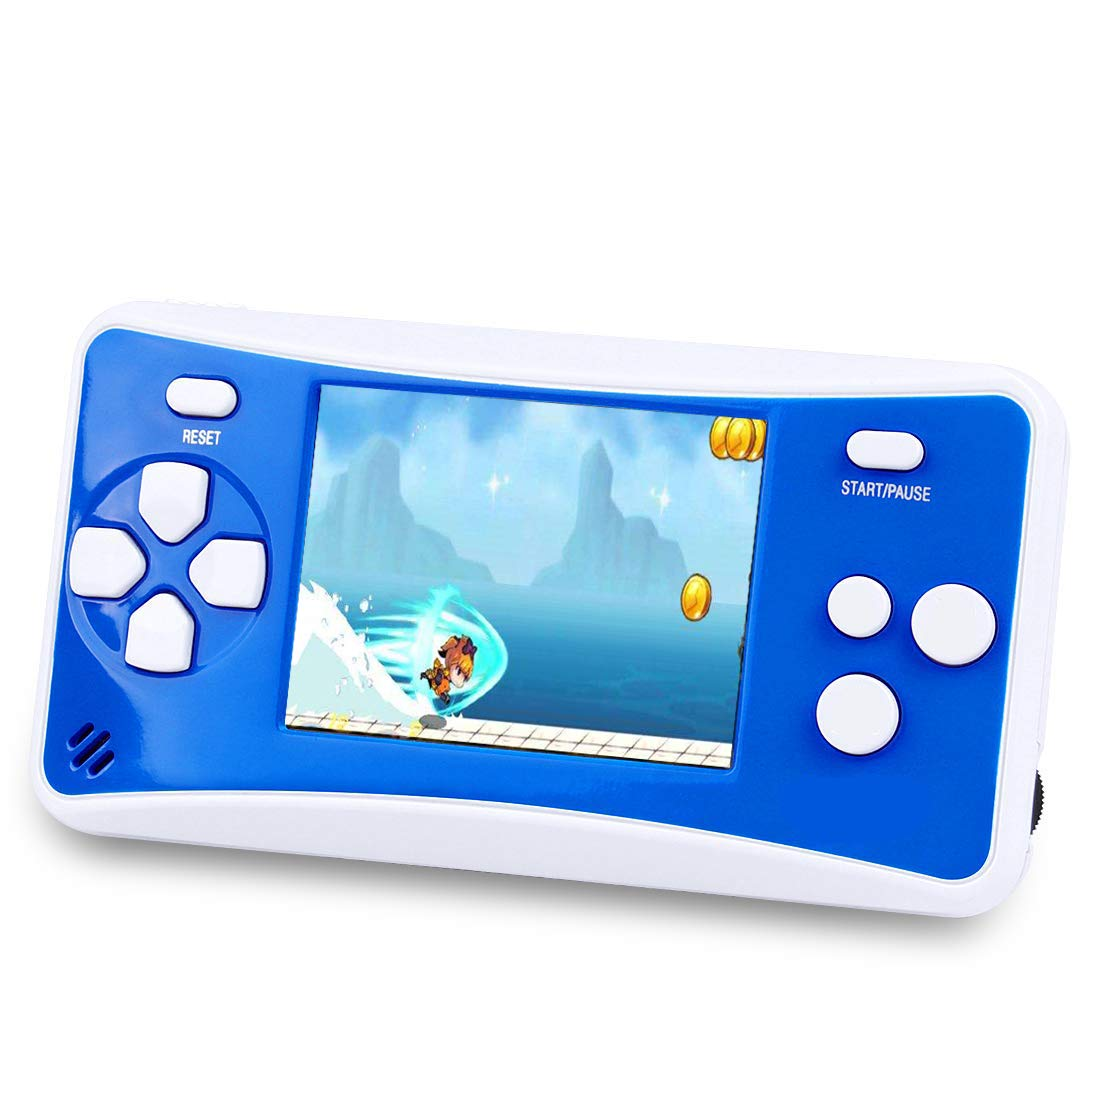 Handheld Game Console for Children,The 80's Arcade Retro Game Player with 2.5'' 8-Bit LCD Portable Video Games Can Connected TV,Built-in 152 Classic Old School Game(Blue1)